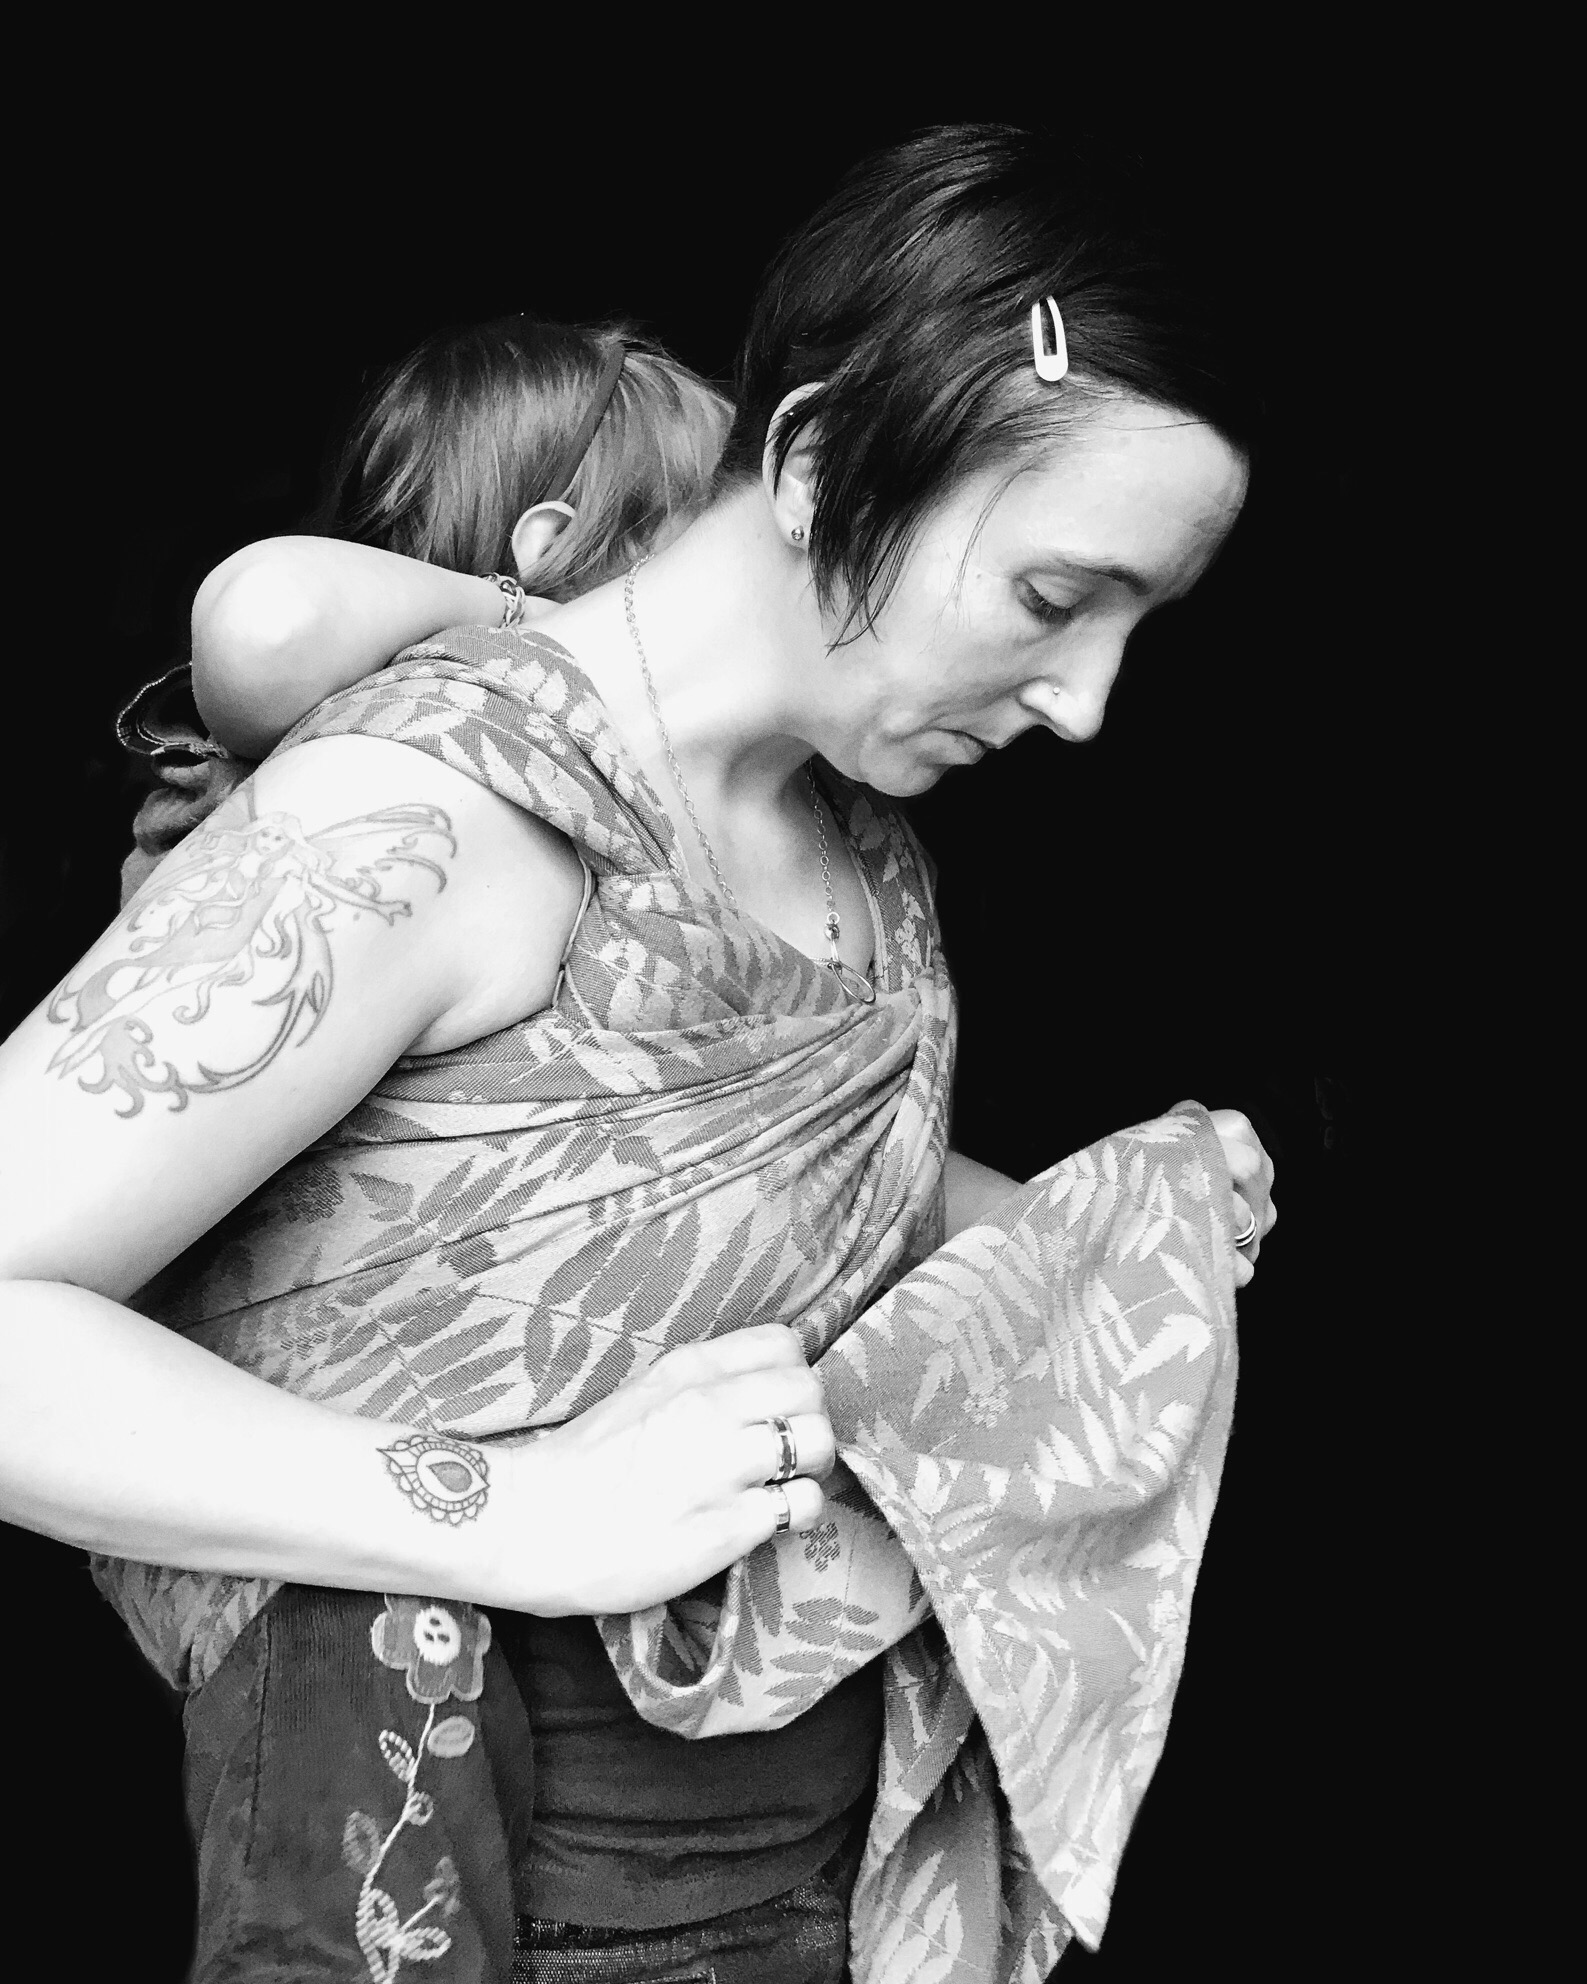 Image of a woman with a young child on her back. She is studying the wrap